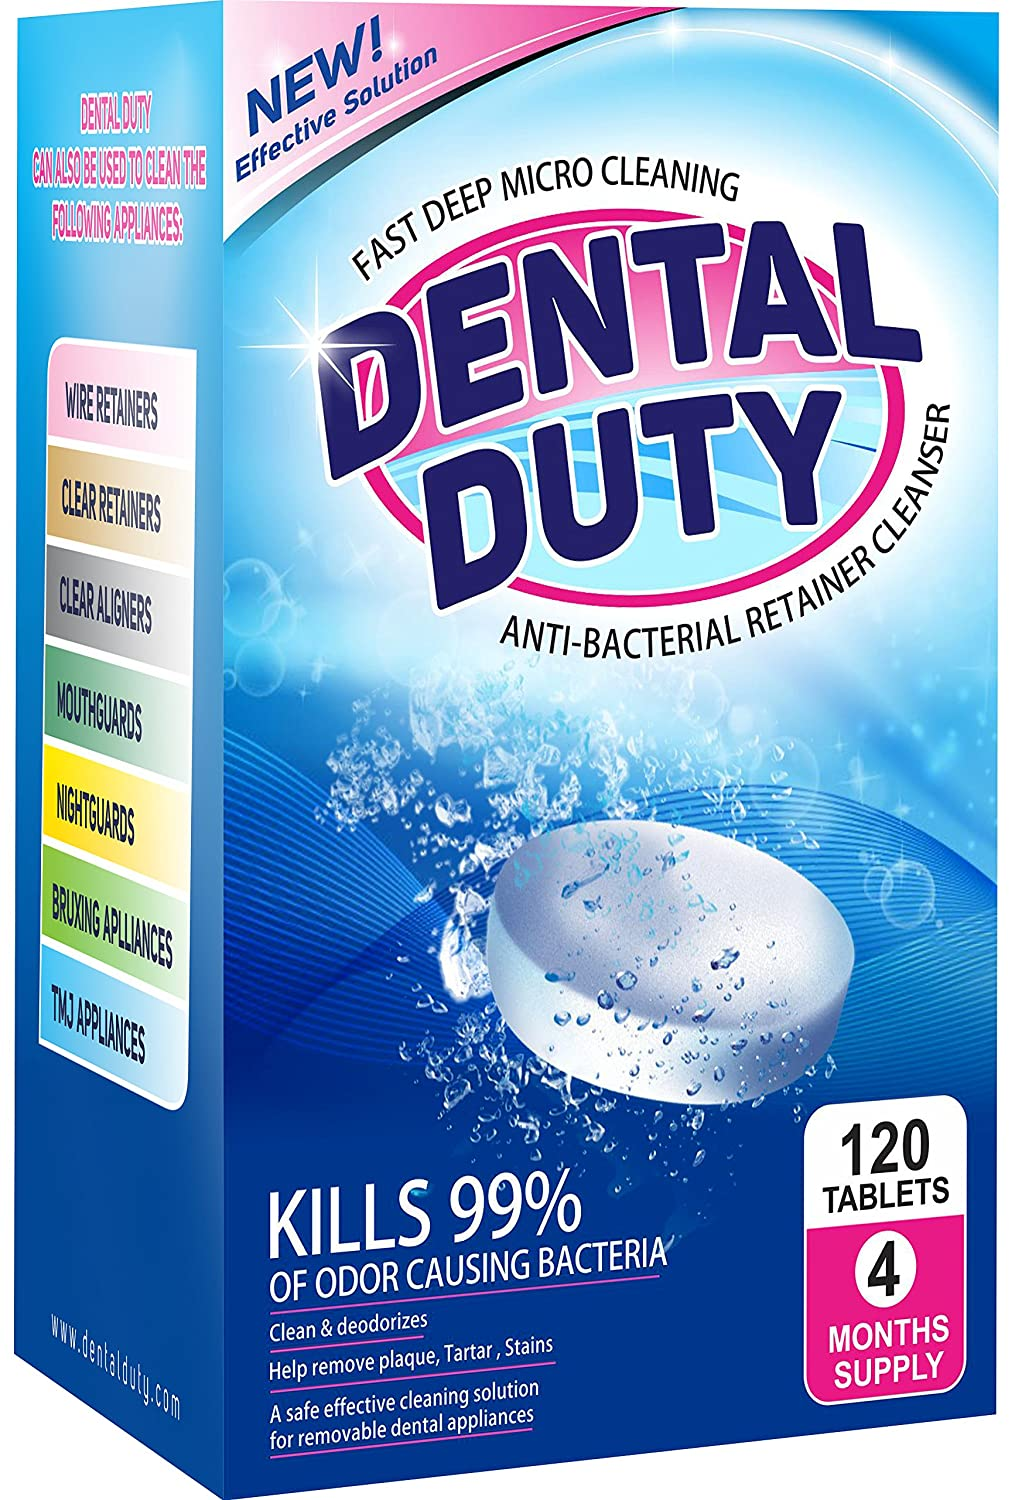 120 Retainer Cleaning Tablets -(4 Months Supply)- Removes Stain, Plaque & Bad Odor from Dentures, Nightguard, Mouth Guard & Removable Dental Appliances - Made in USA. Dental Duty DT01